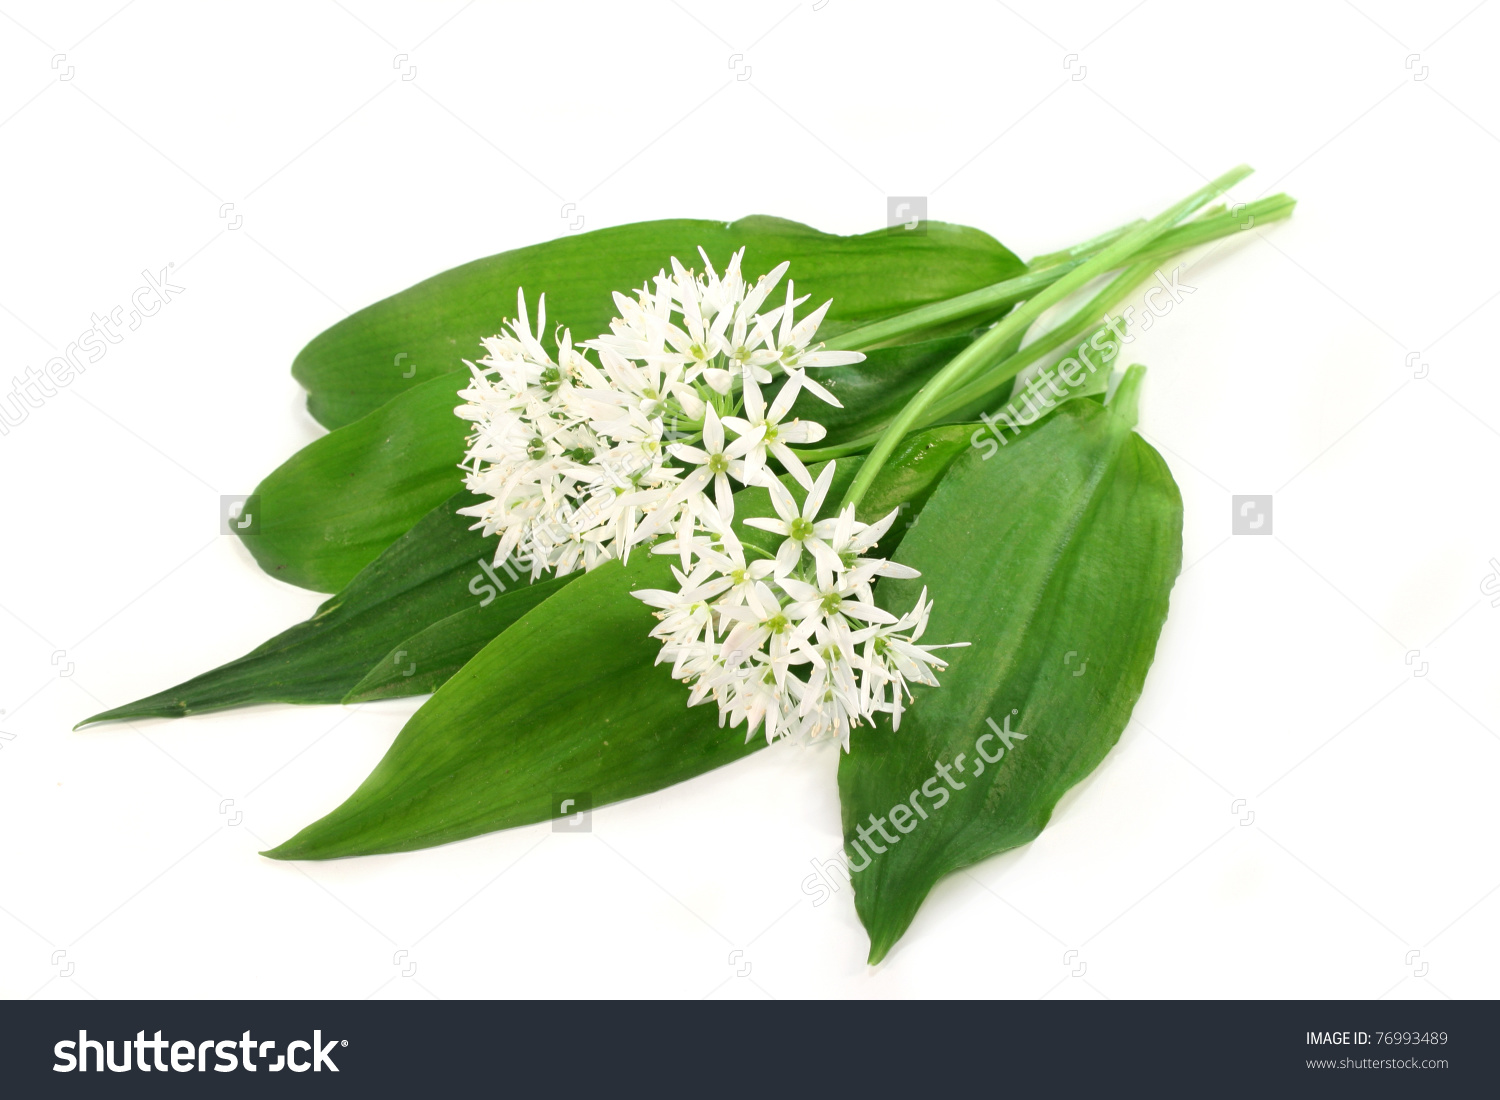 Fresh Wild Garlic Leaves With Flowers On A White Background Stock.